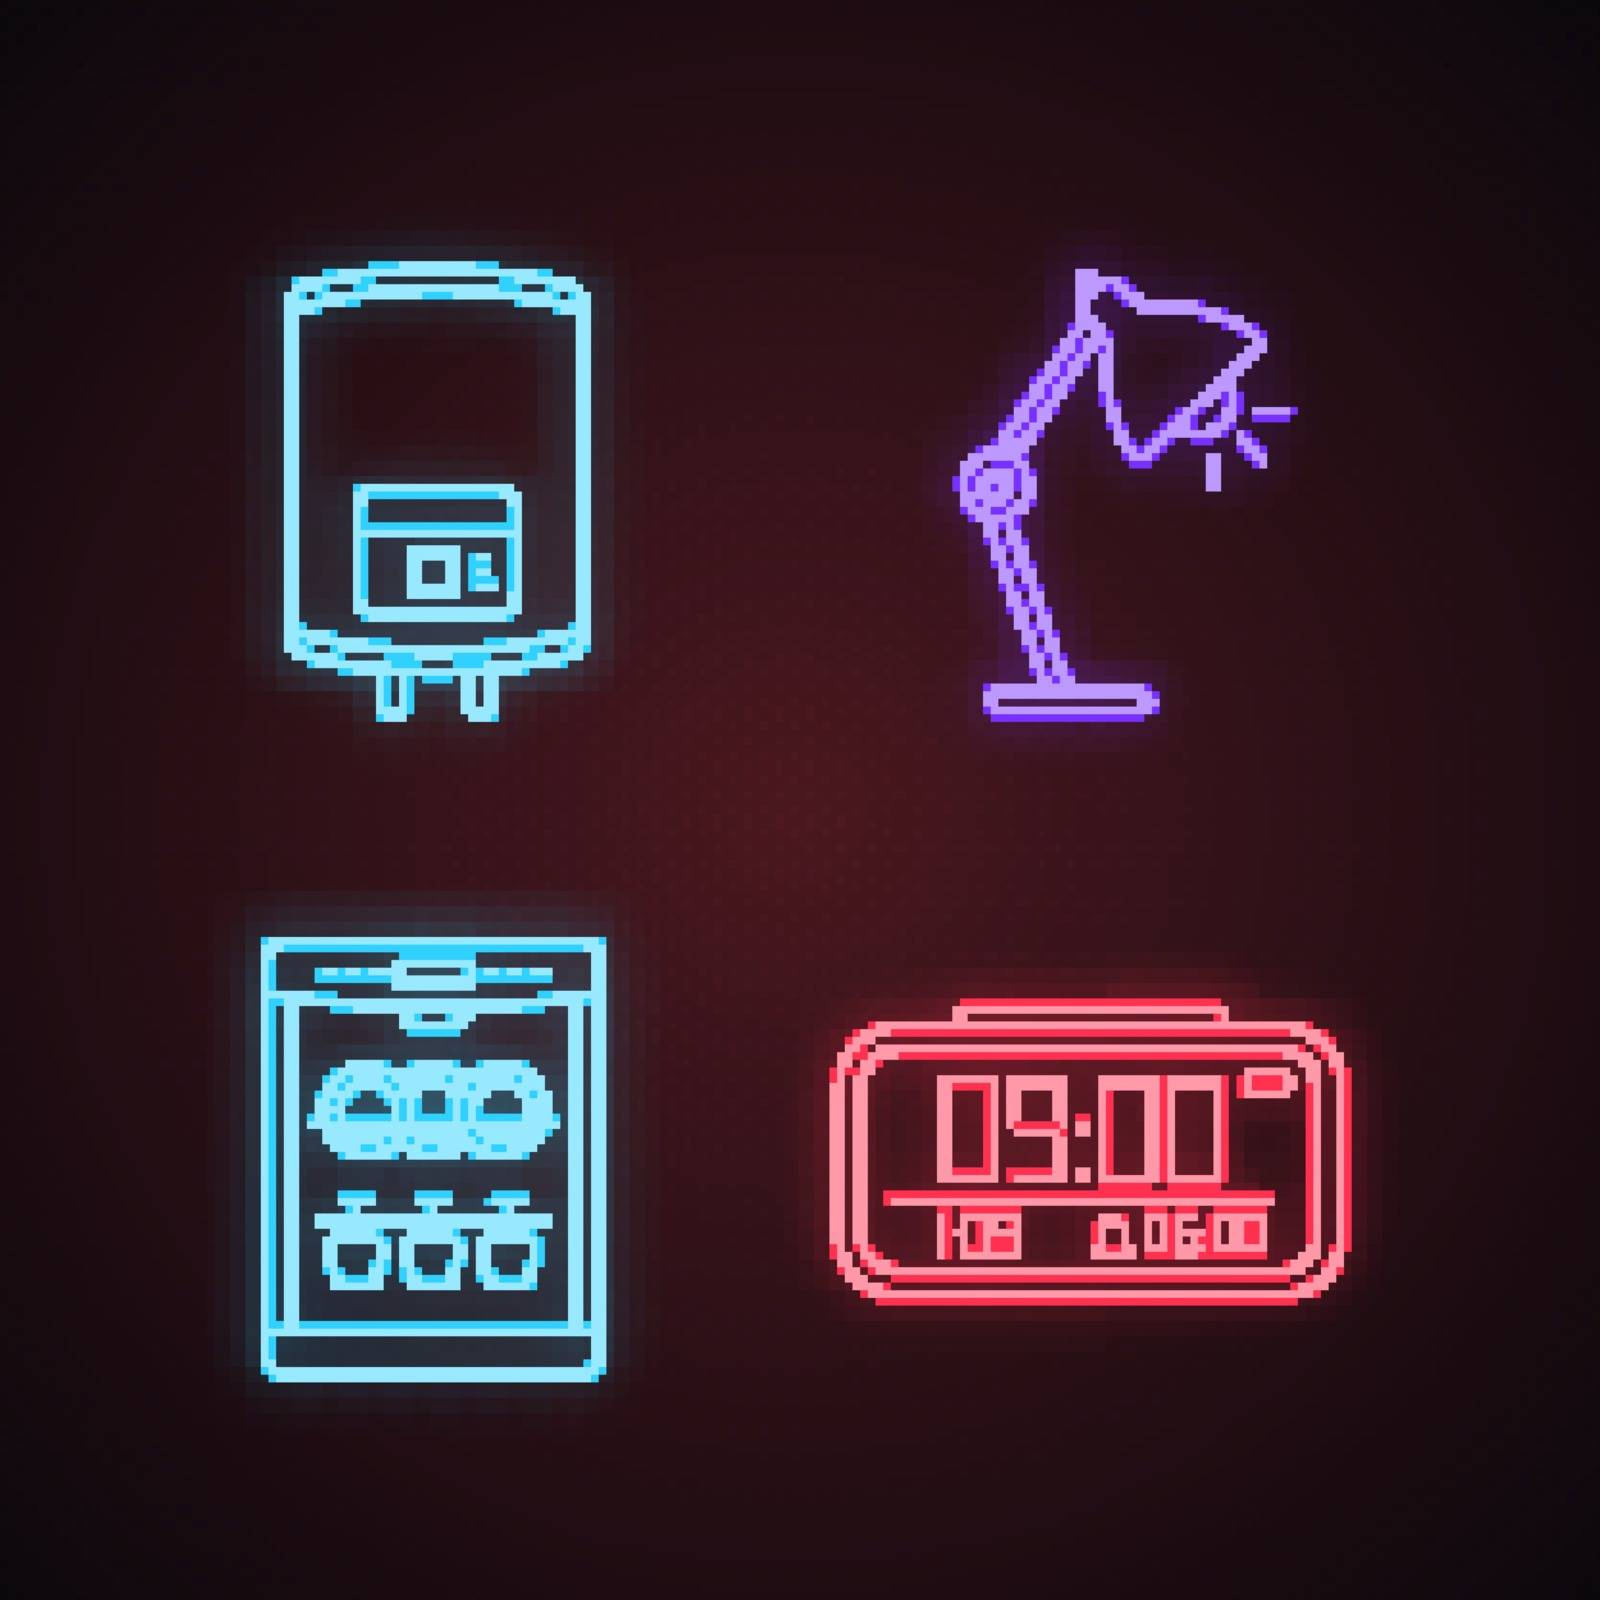 Household appliance neon light icons set. Electric water heater, table lamp, dishwasher, digital clock. Glowing signs. Vector isolated illustrations